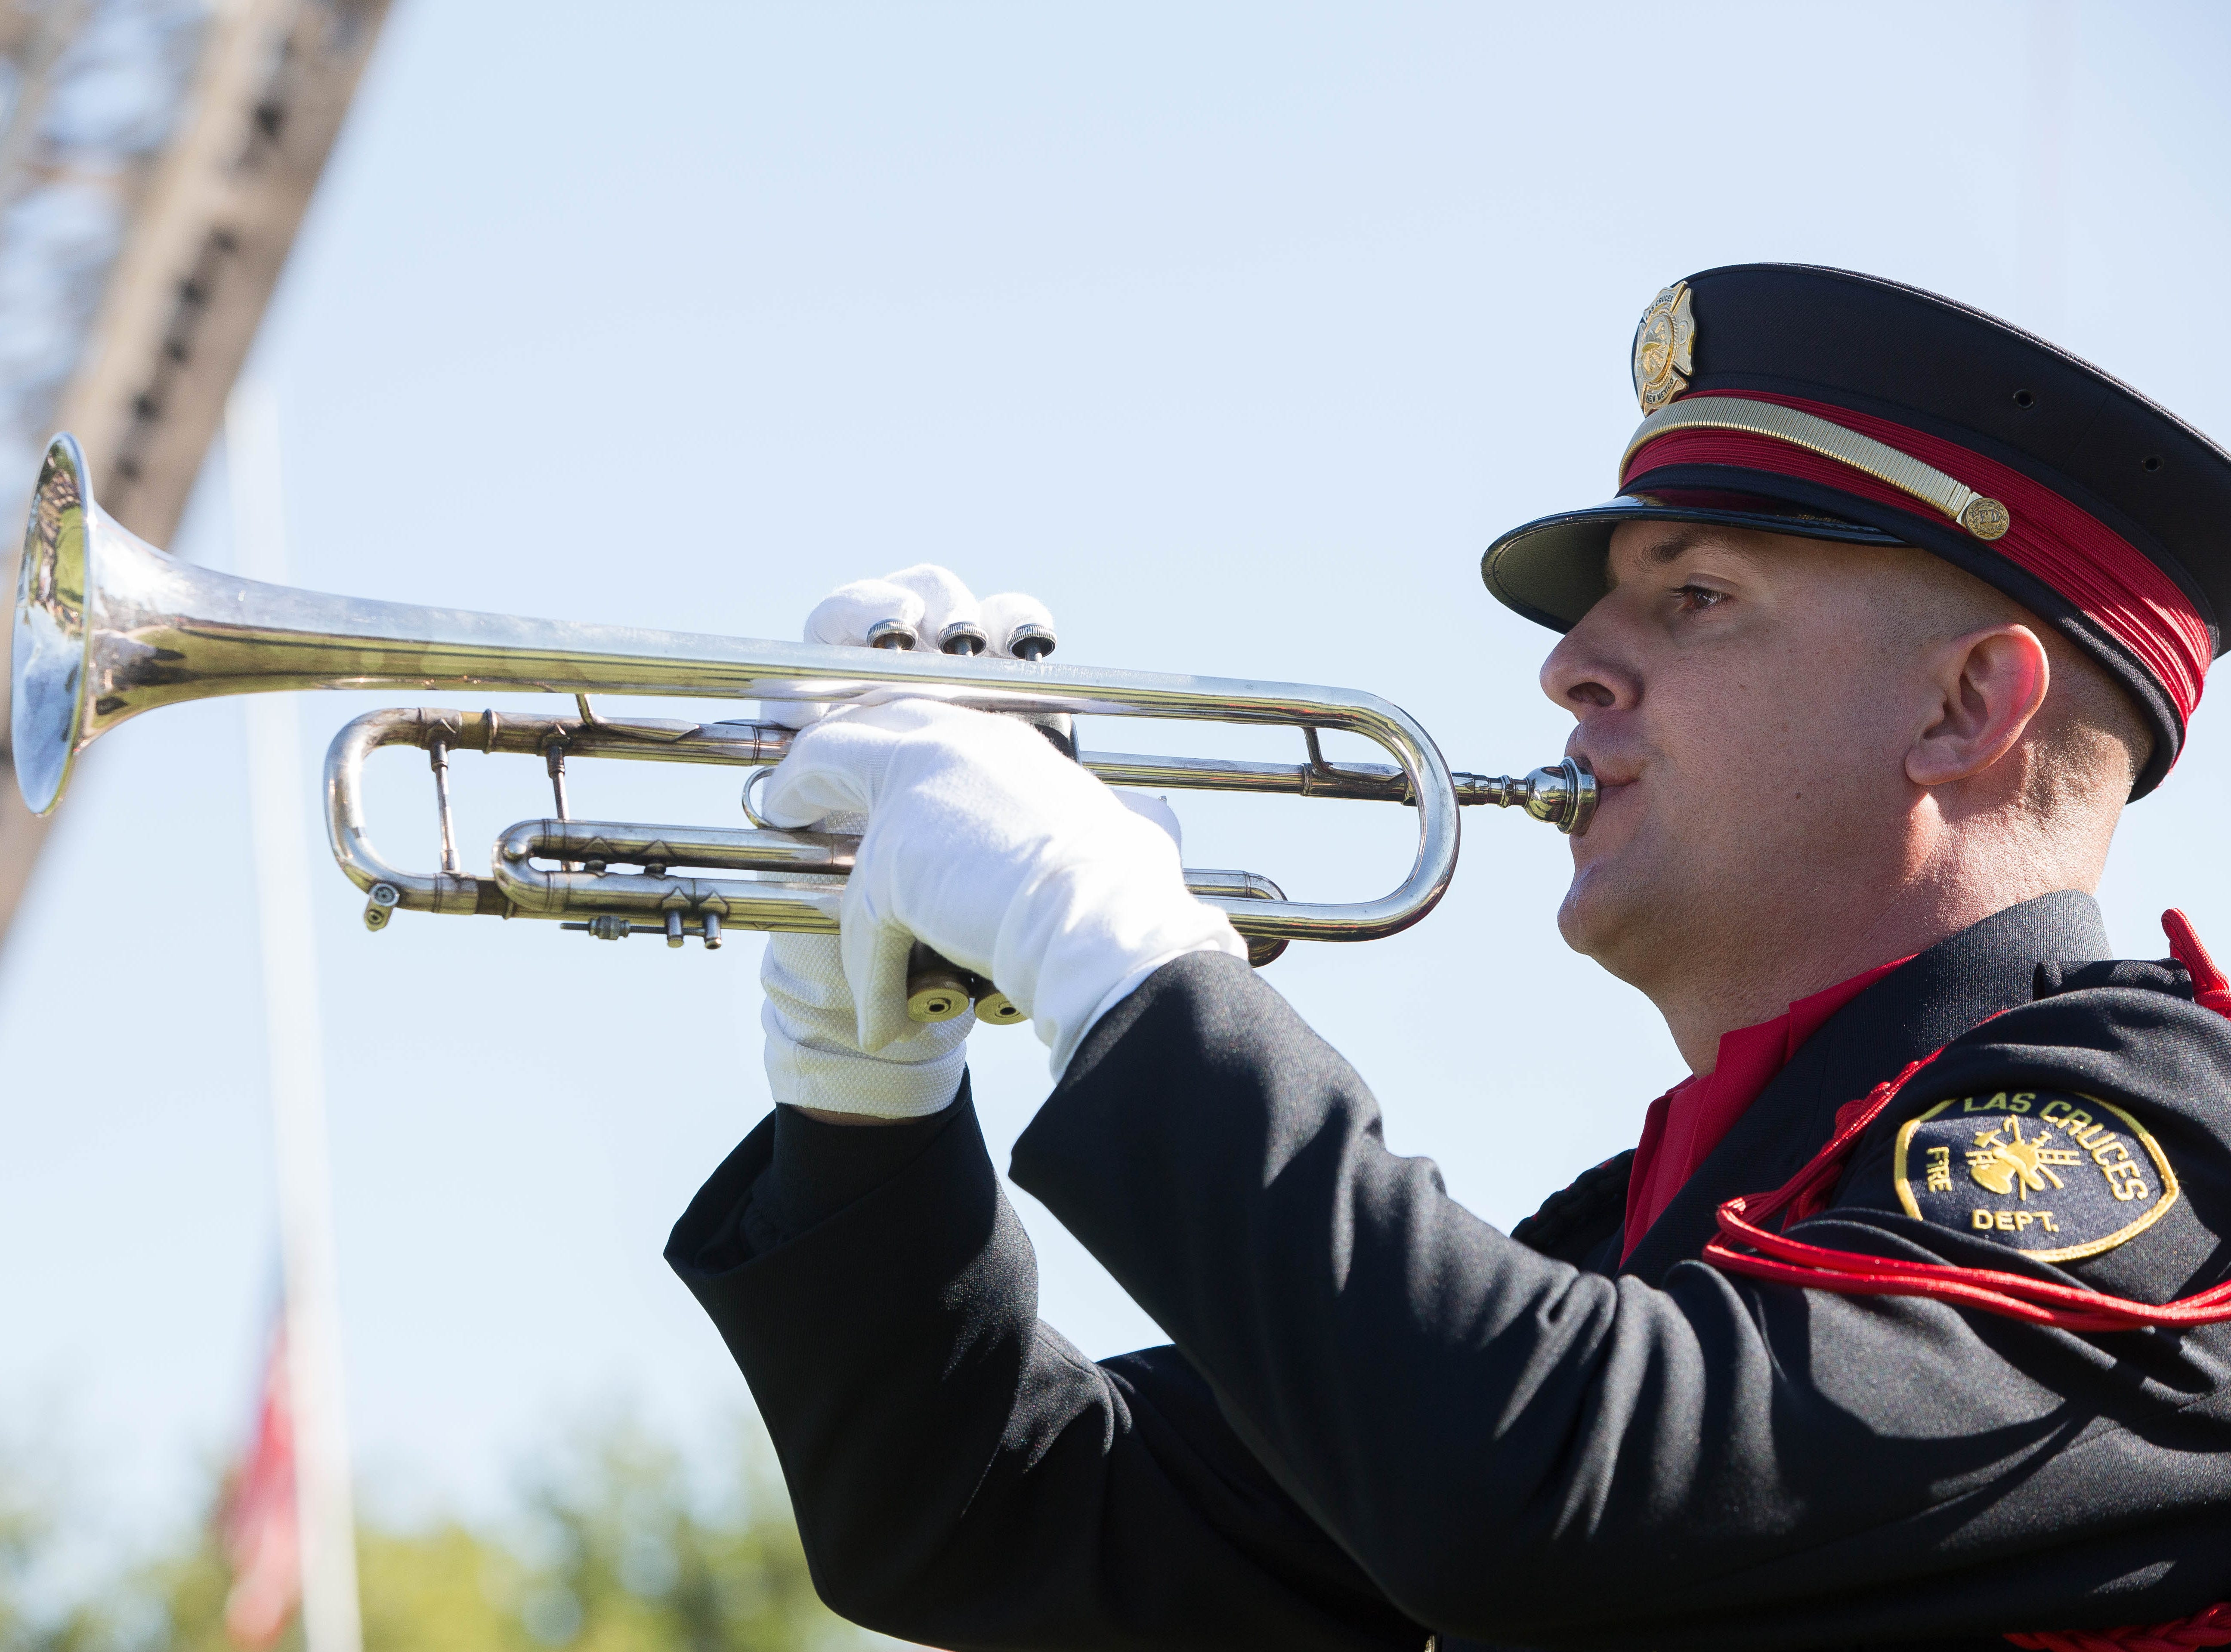 Michael Danner, a fire investigator and member of the Las Cruces Fire Department Honor Guard, performs taps during the Patriot Day ceremony at New Mexico State University Tuesday, Sept. 11, 2018.